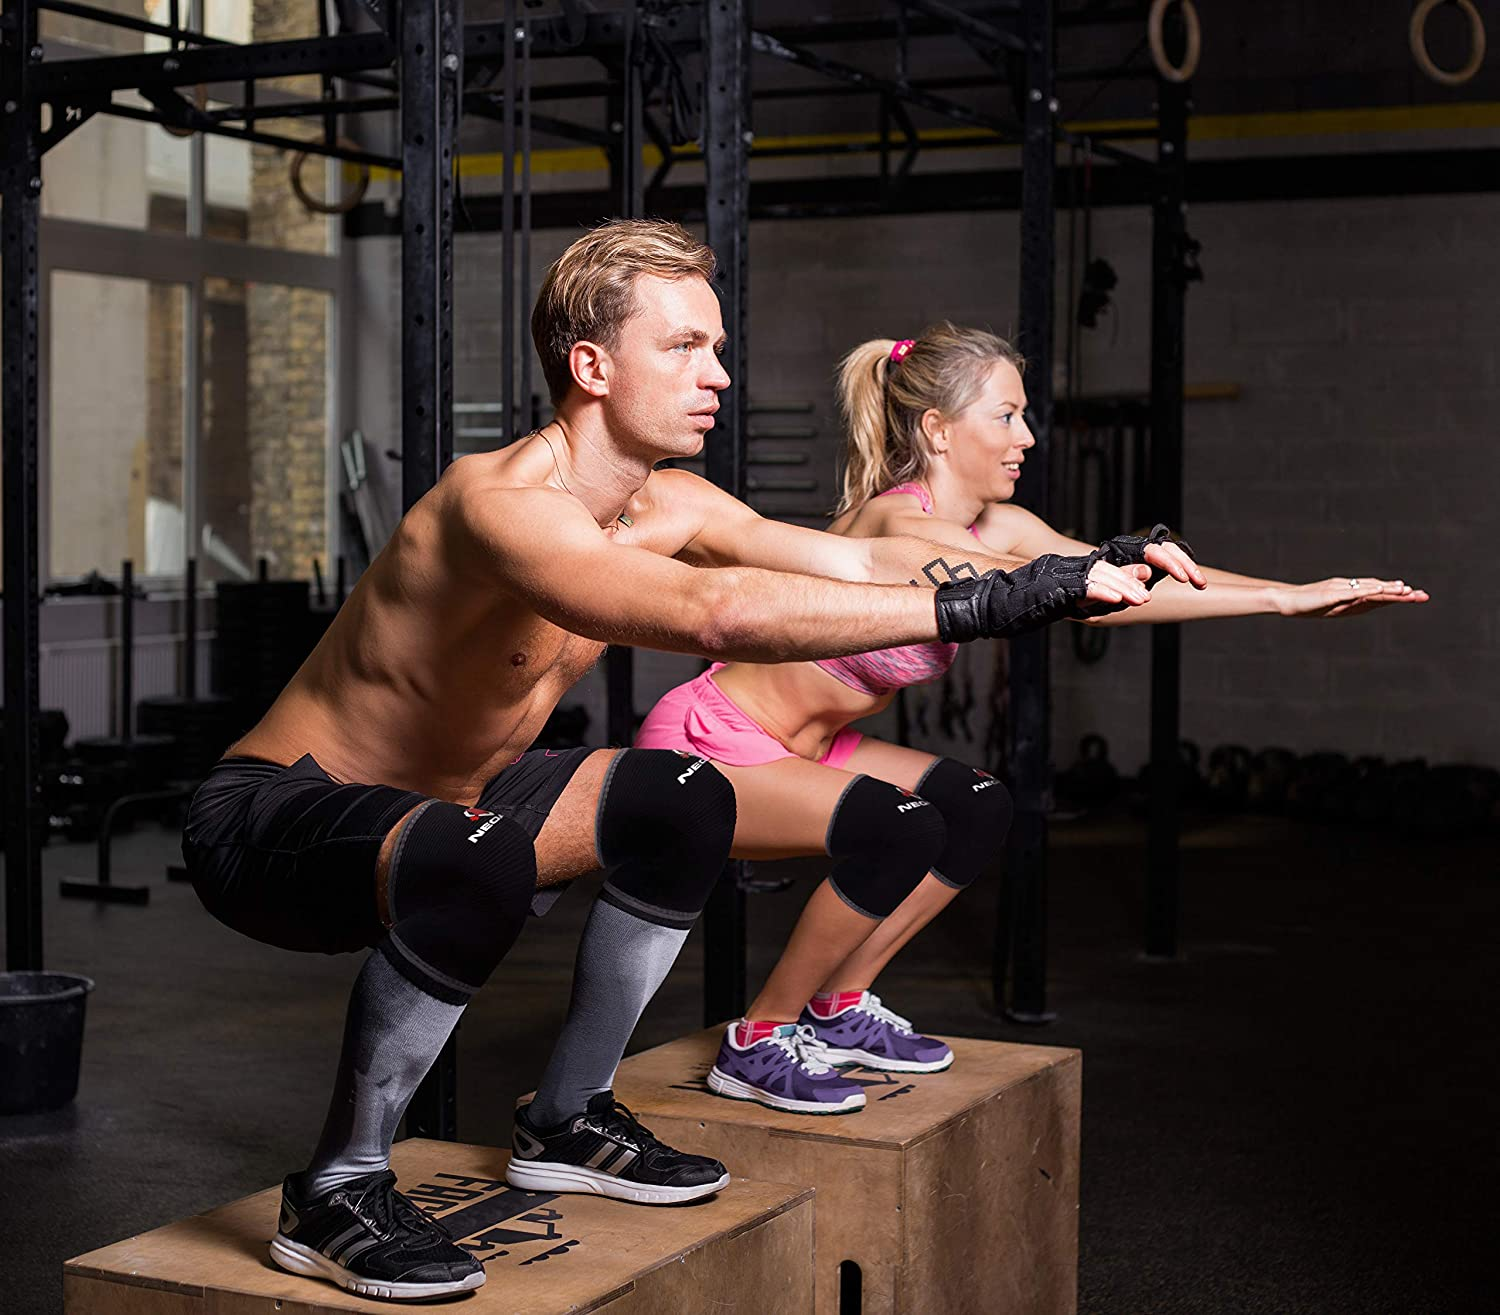 NeoAlly® High Strength Compression Knee Sleeves   CrossFit, Jumping, Weightlifting, Squats   NeoAllySports.com